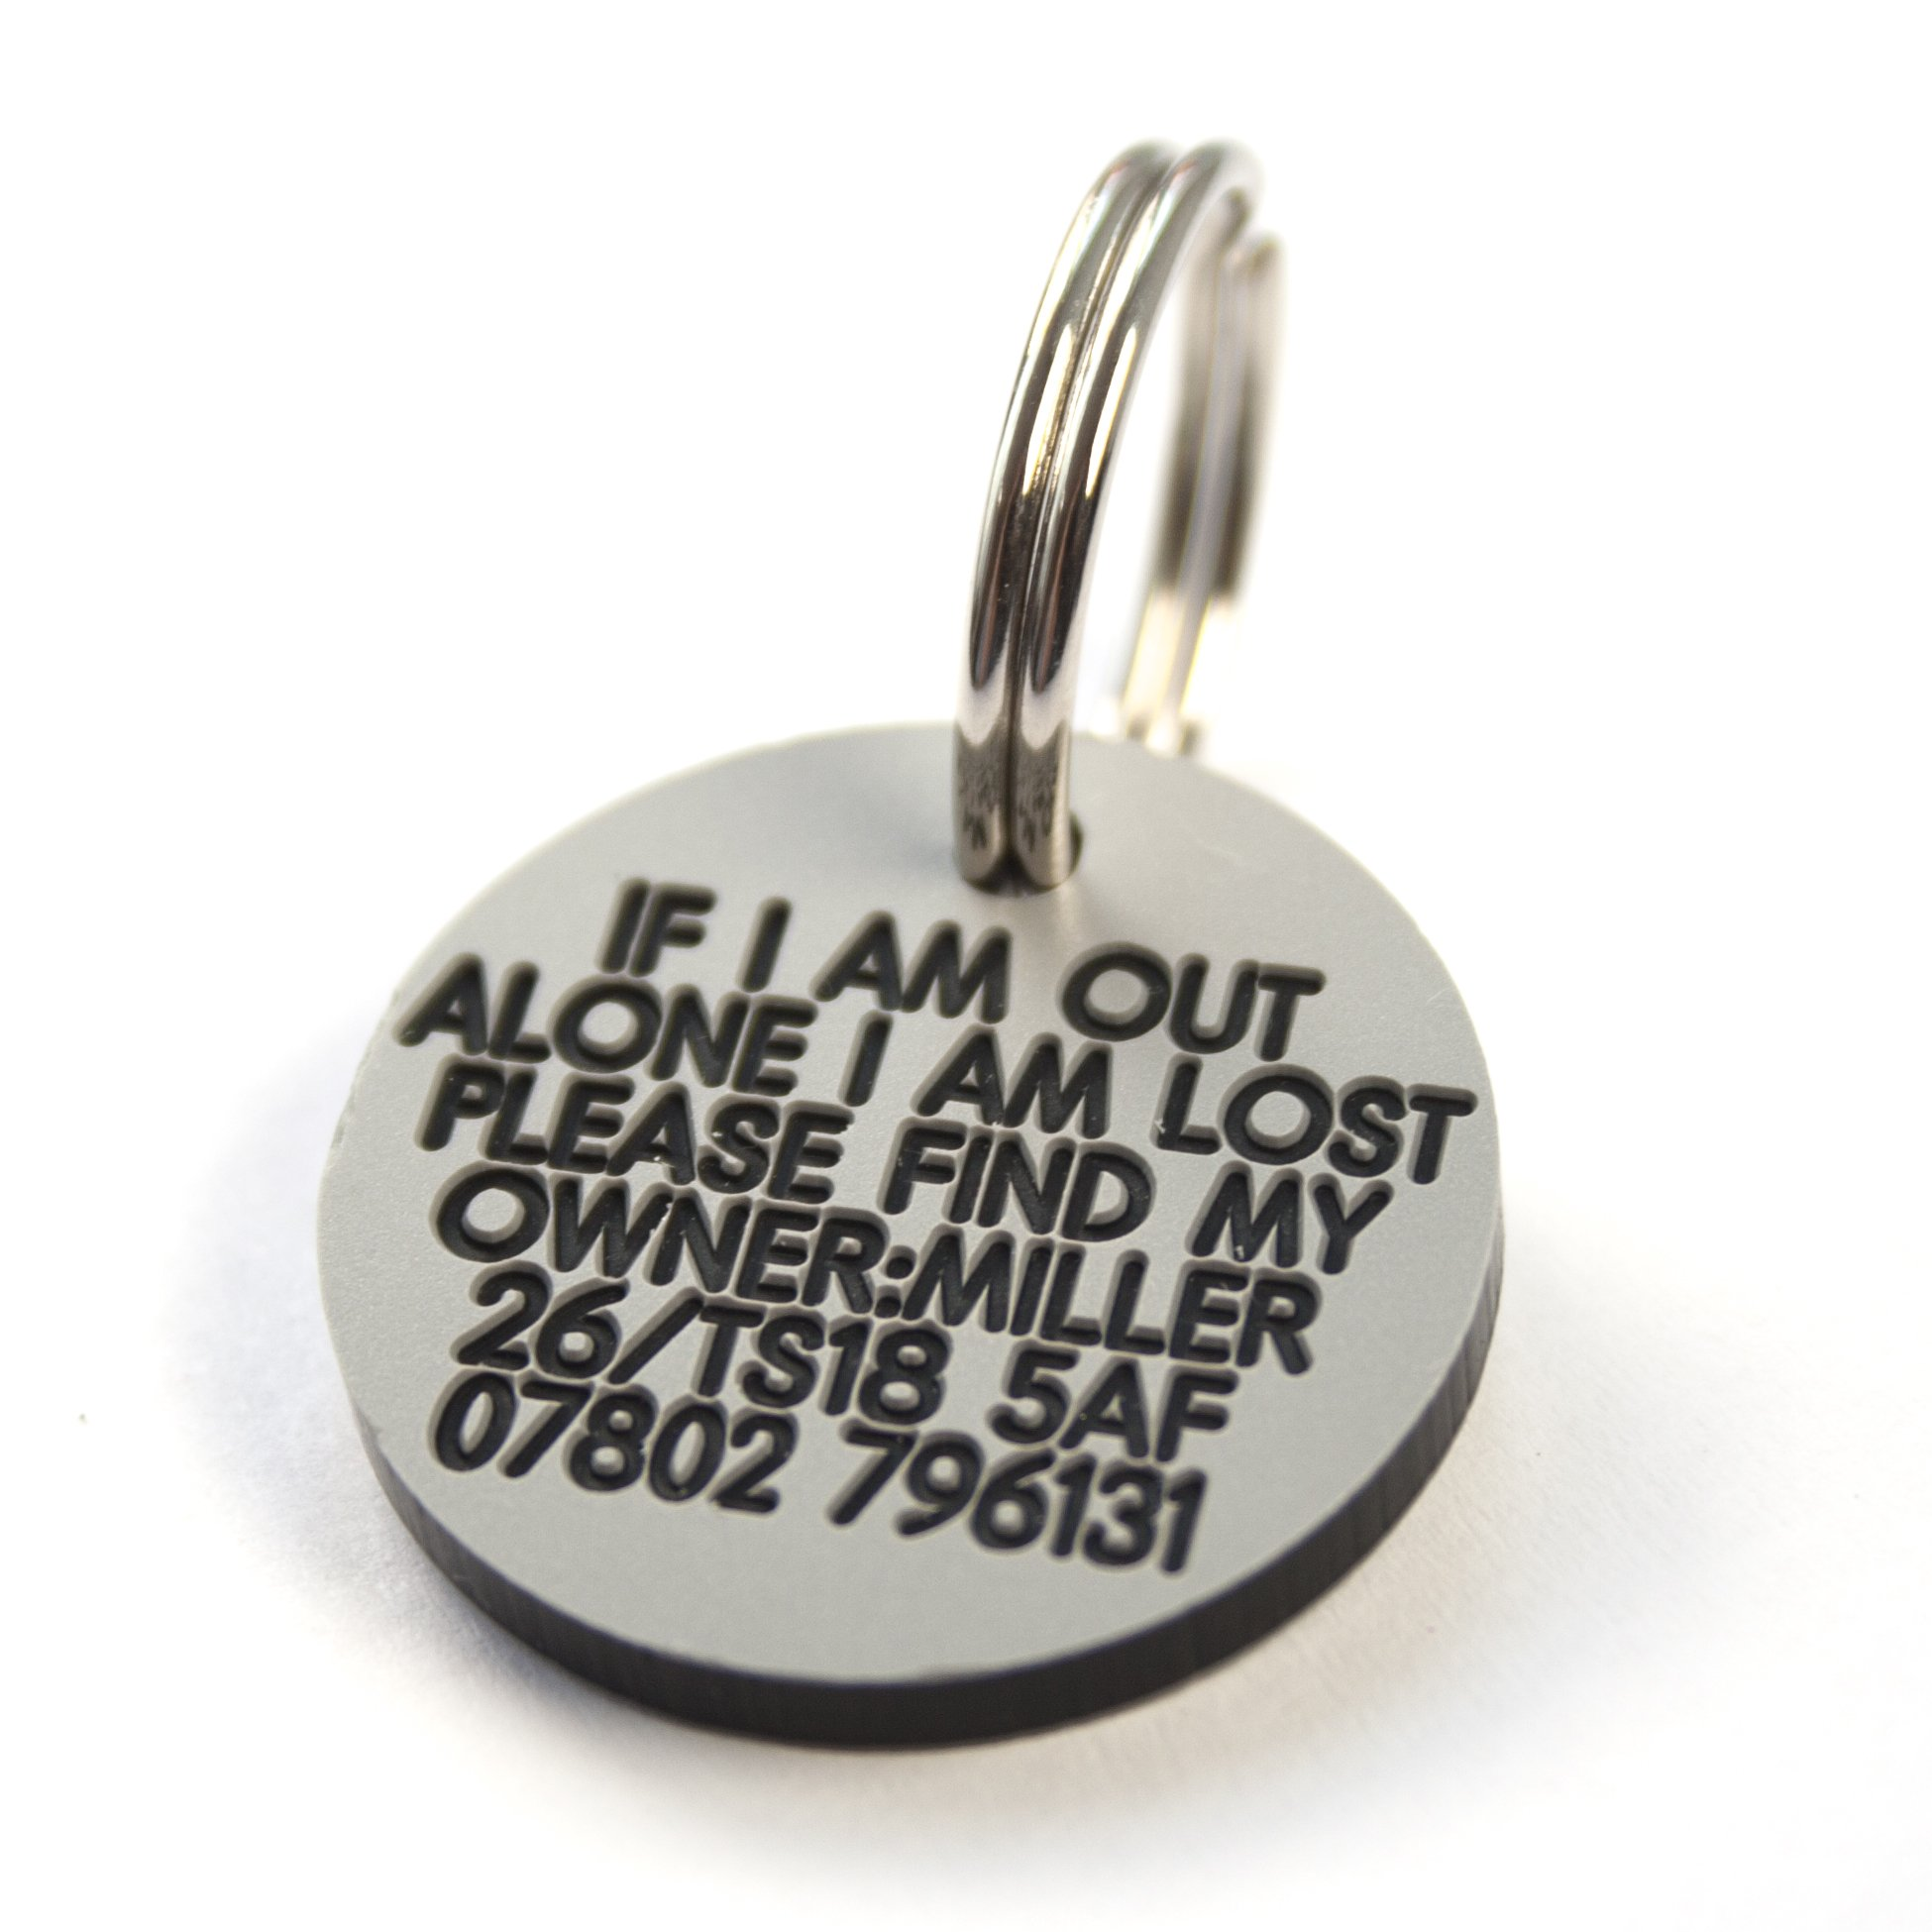 Engraving Studios Deeply engraved silver plastic 27mm circular dog tag